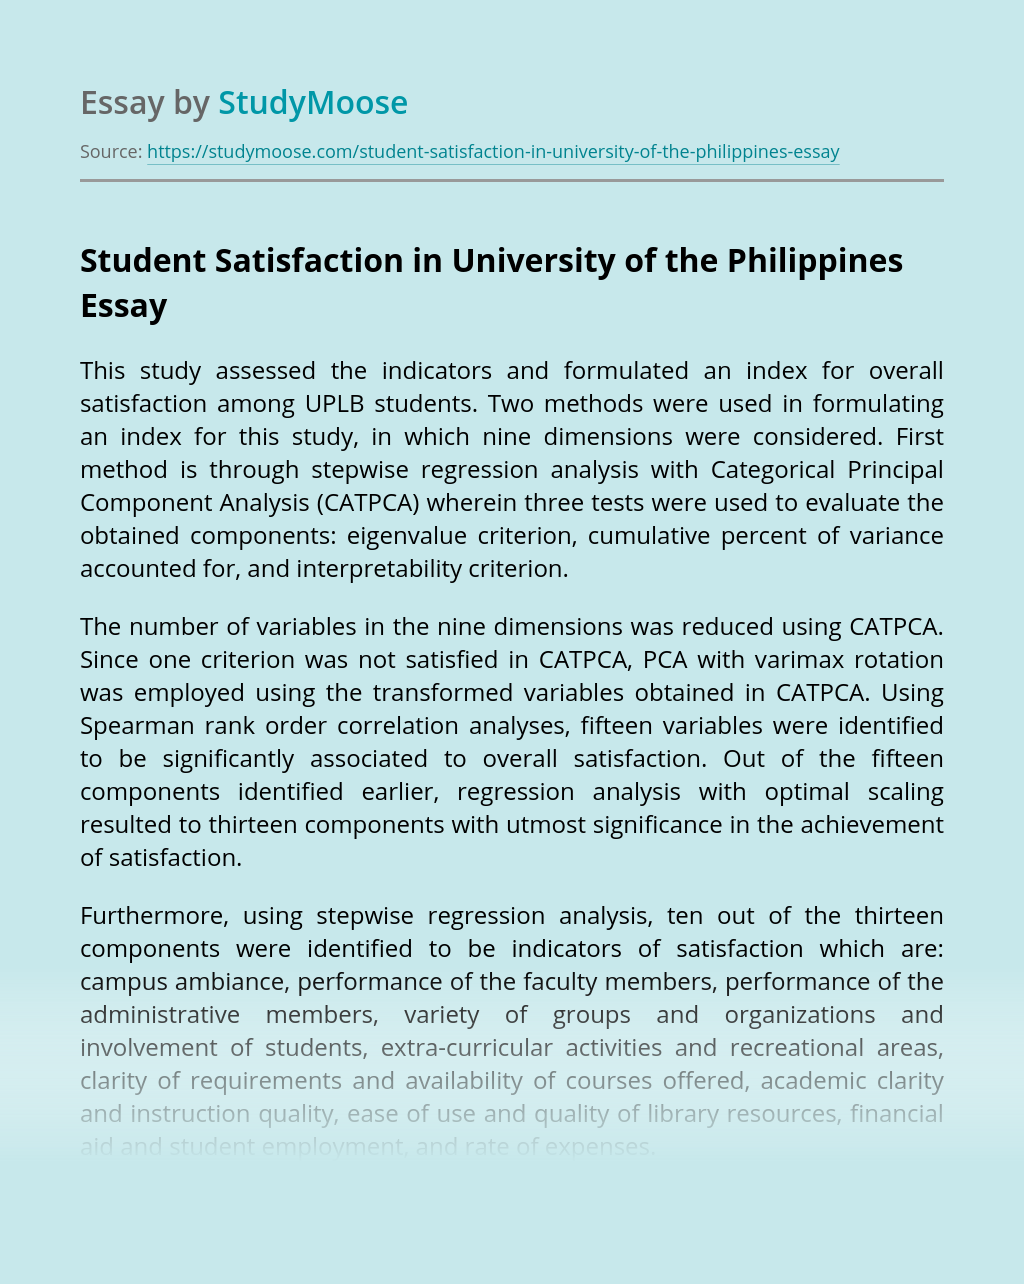 Student Satisfaction in University of the Philippines